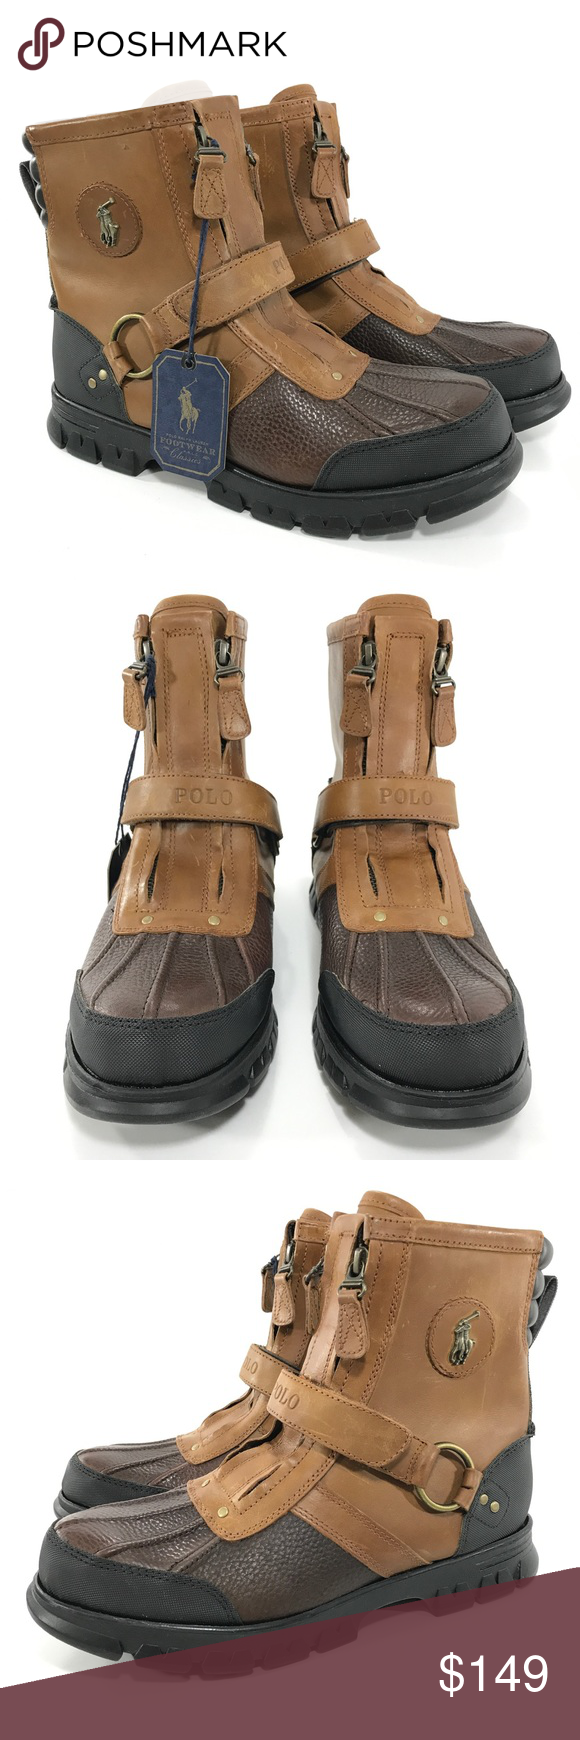 The Rail Brysen Chelsea Boot Men Boots Chelsea Boots Style Chelsea Boots